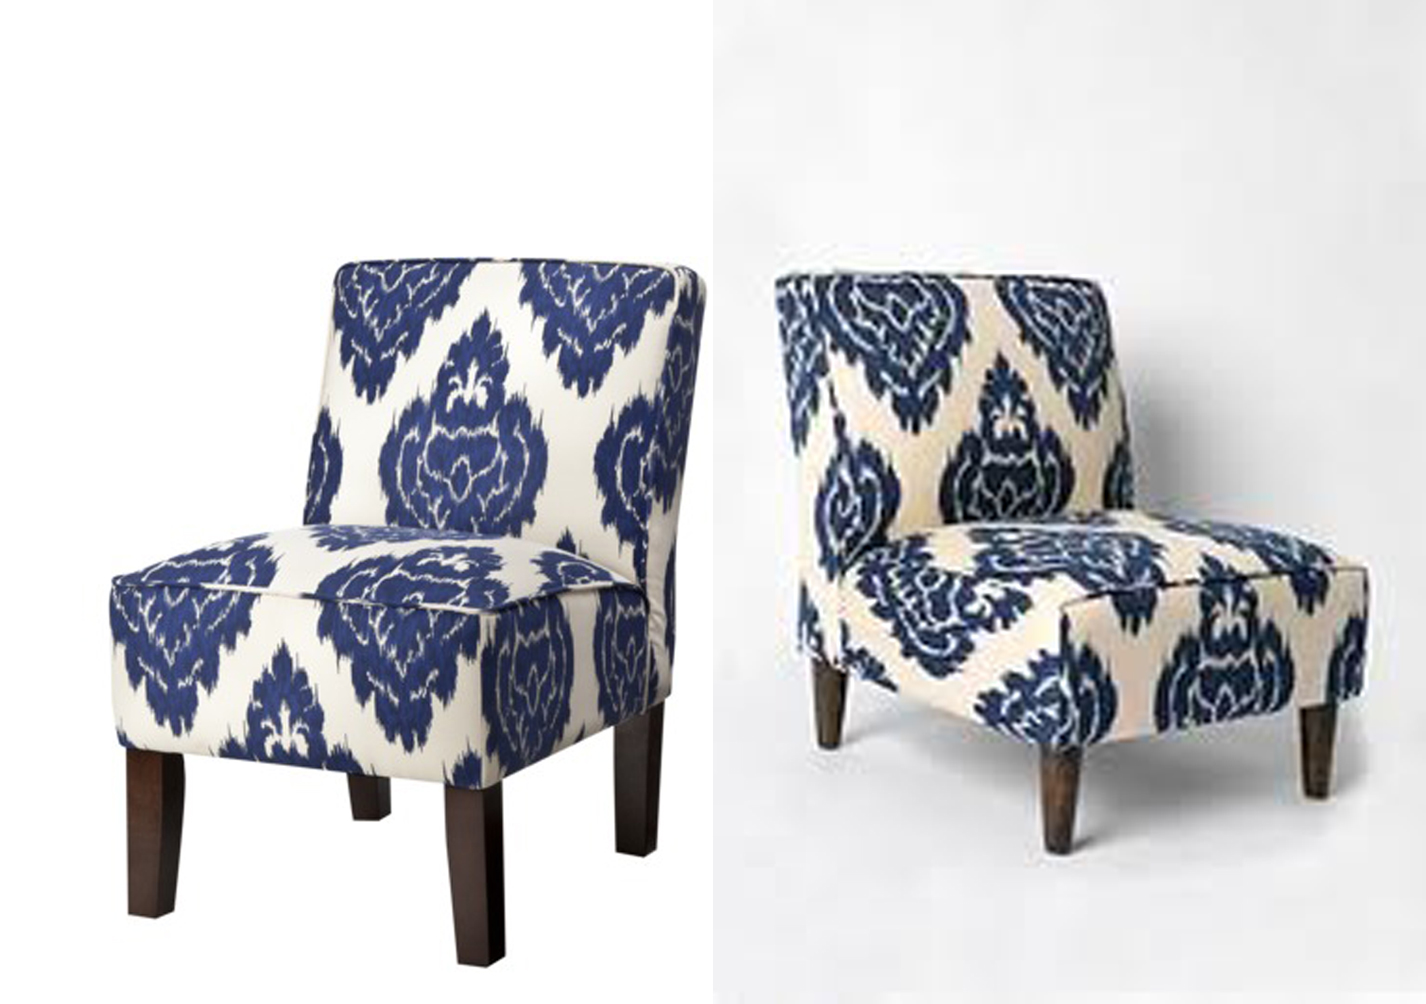 Urban Outfitters Chair Reclining Computer Decor Musings Slipper Target Vs